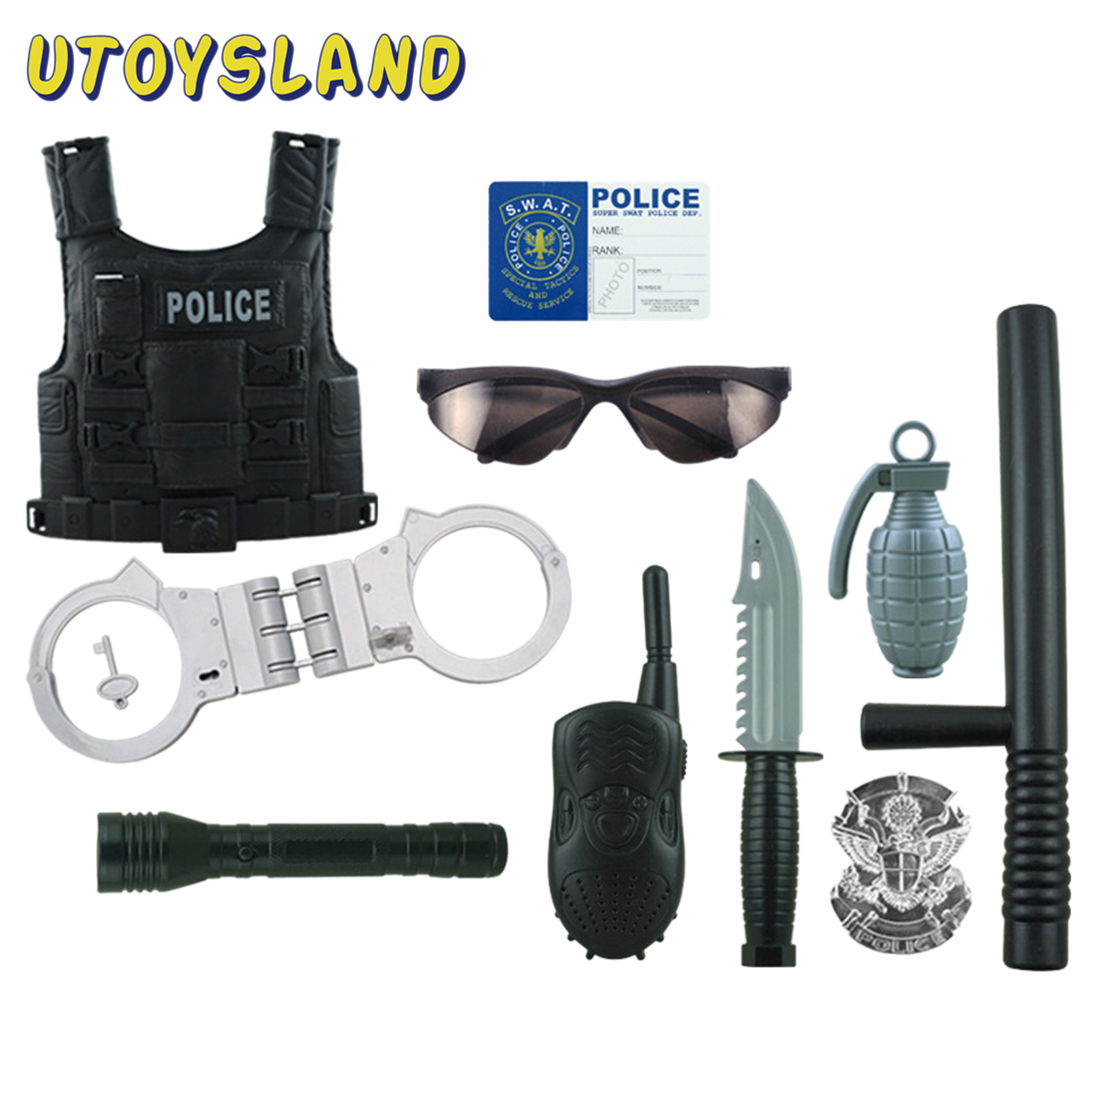 Hot 13Pcs Children Kids Role Play Police Costume Cop Dress-Up Clothes Playset For Fancy Dress Role Playing Children Gift - Black